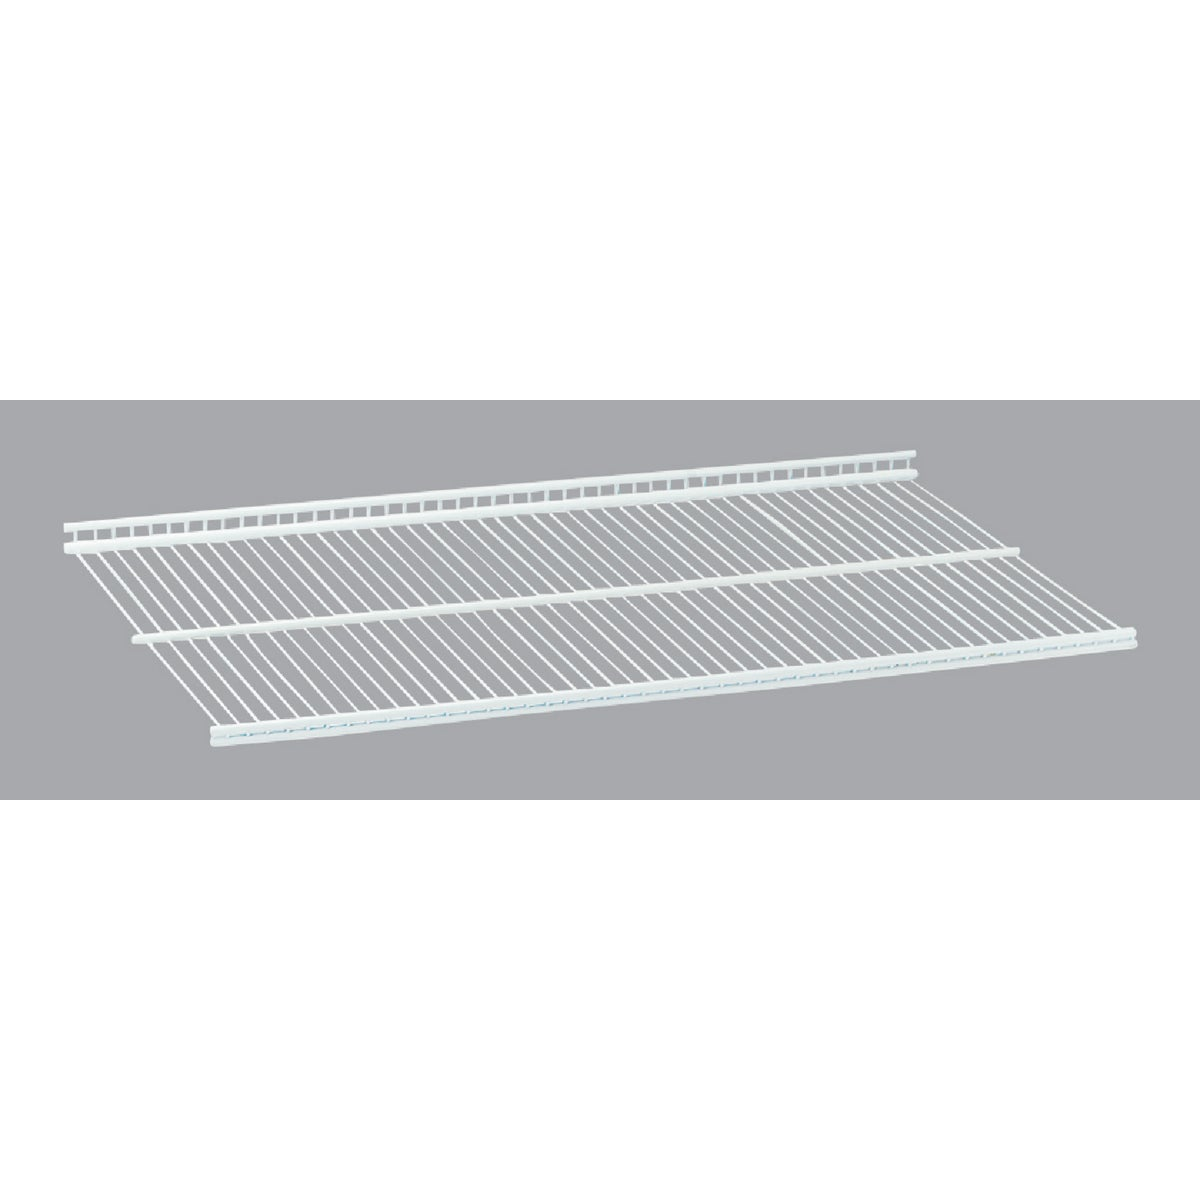 16X24 PROFILE SHELF - 1813162411 by Schulte Corp